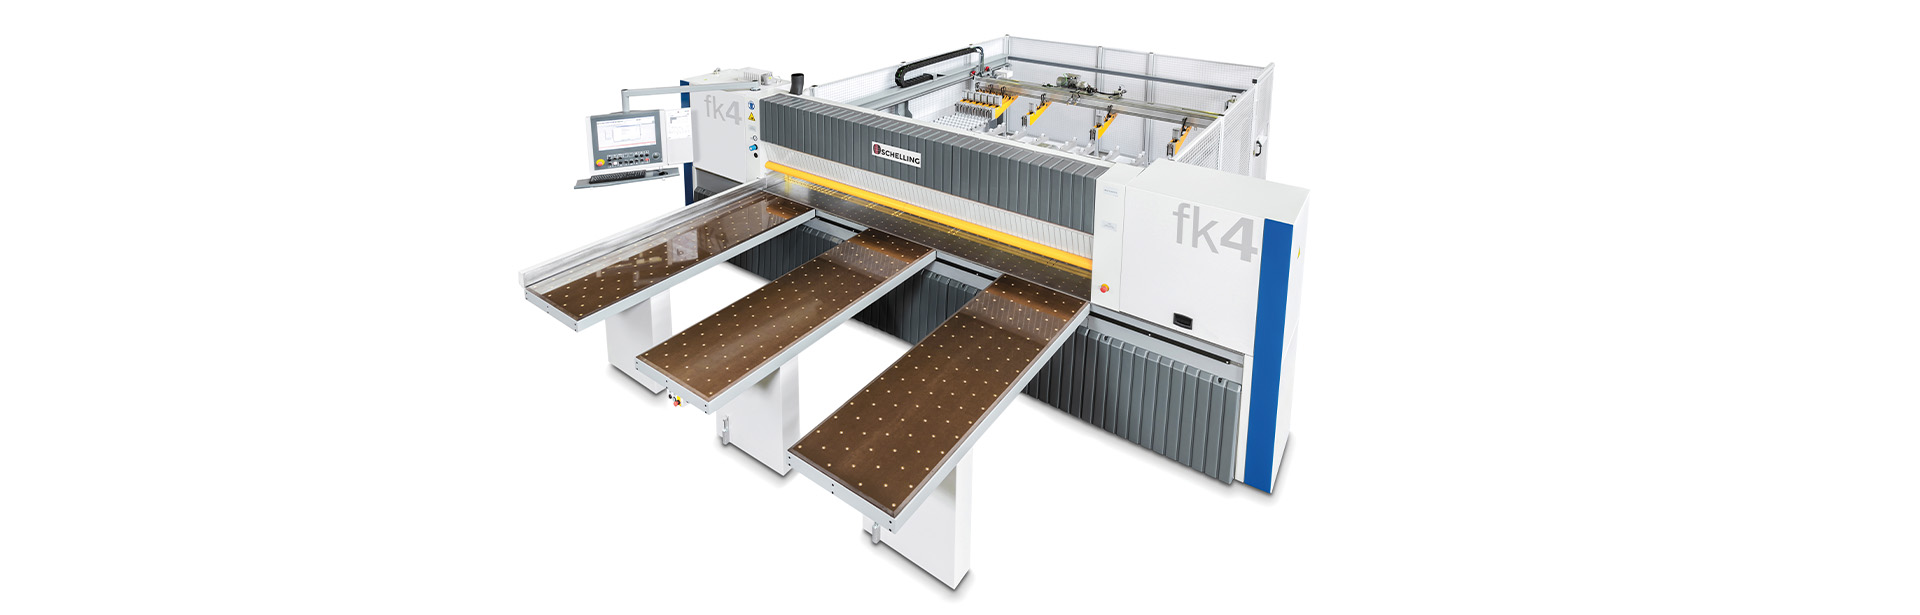 Schelling fk4 Plastic and Composite Panel Saw